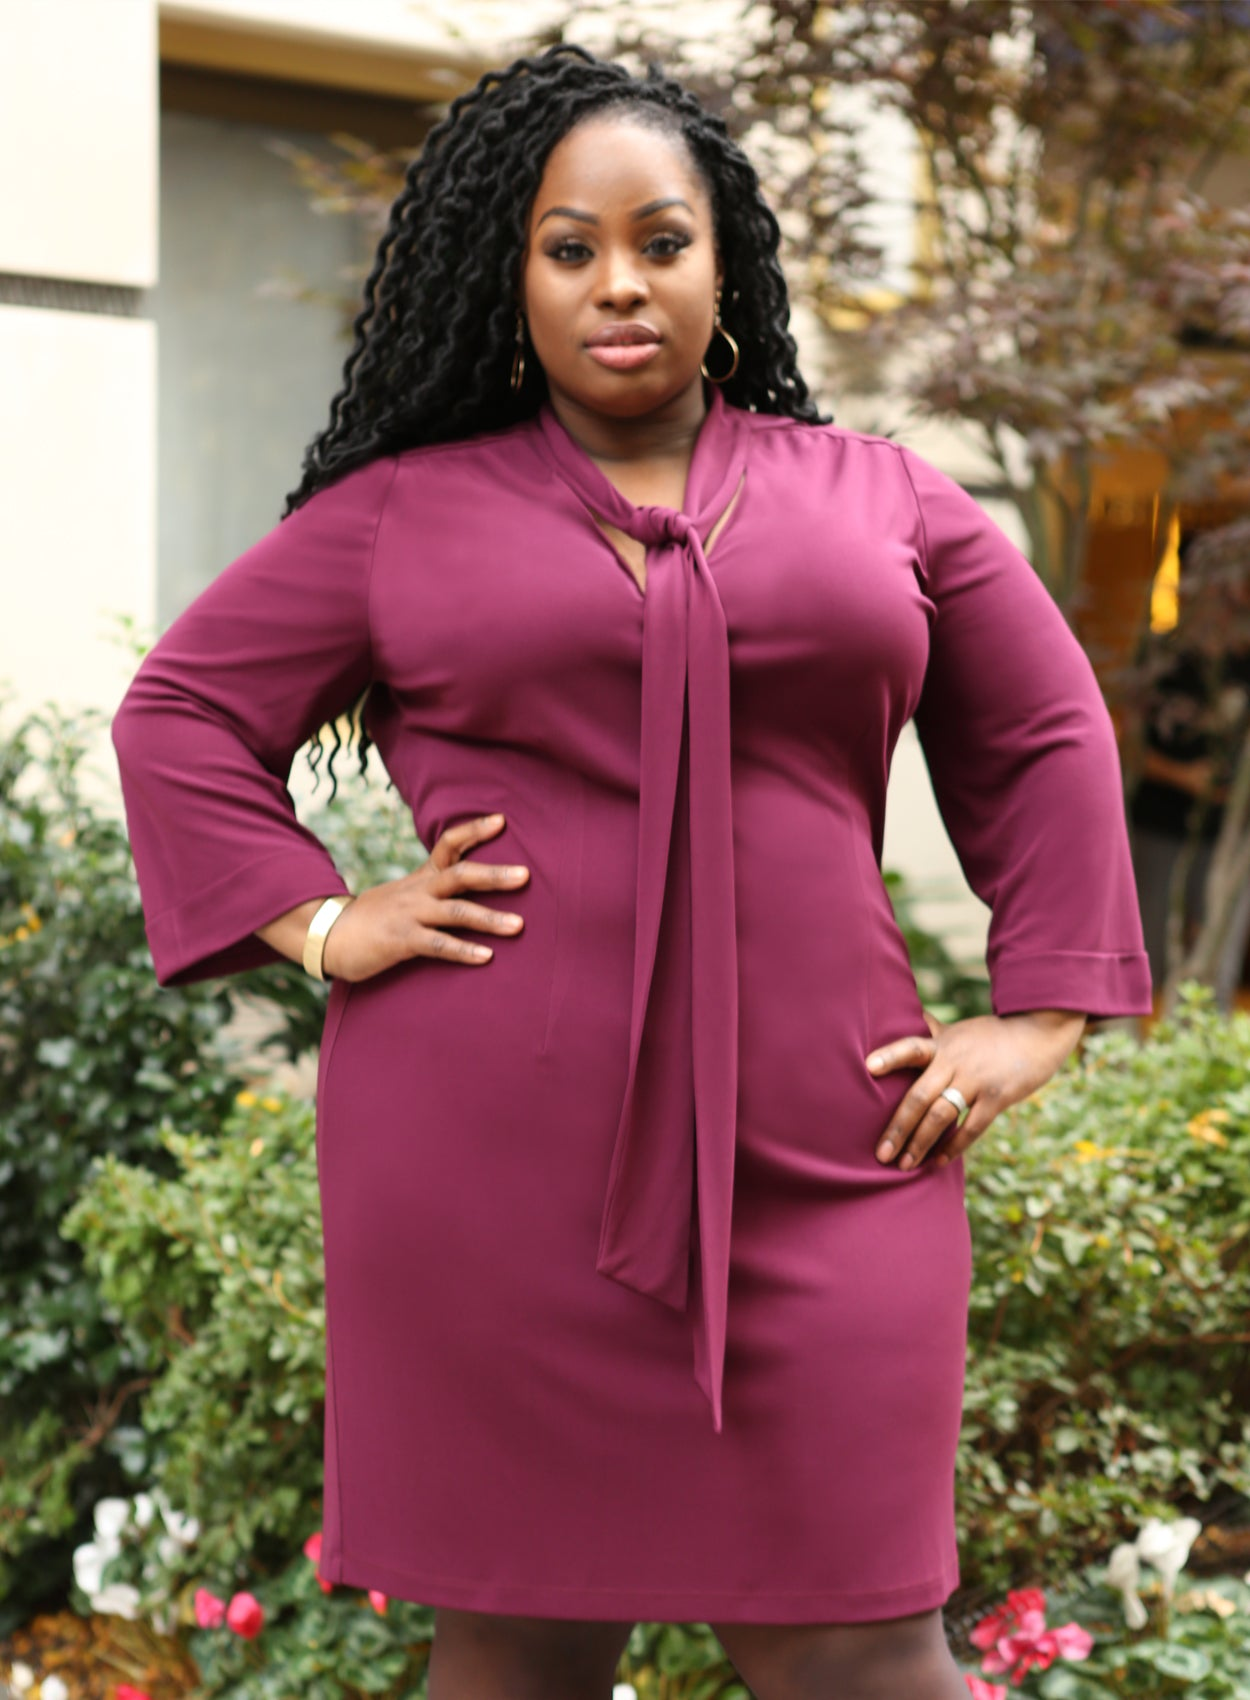 CURVY PLUS SIZE SHEATH DRESS WITH TIE NECK AND SLEEVES IN BURGUNDY WINE RED